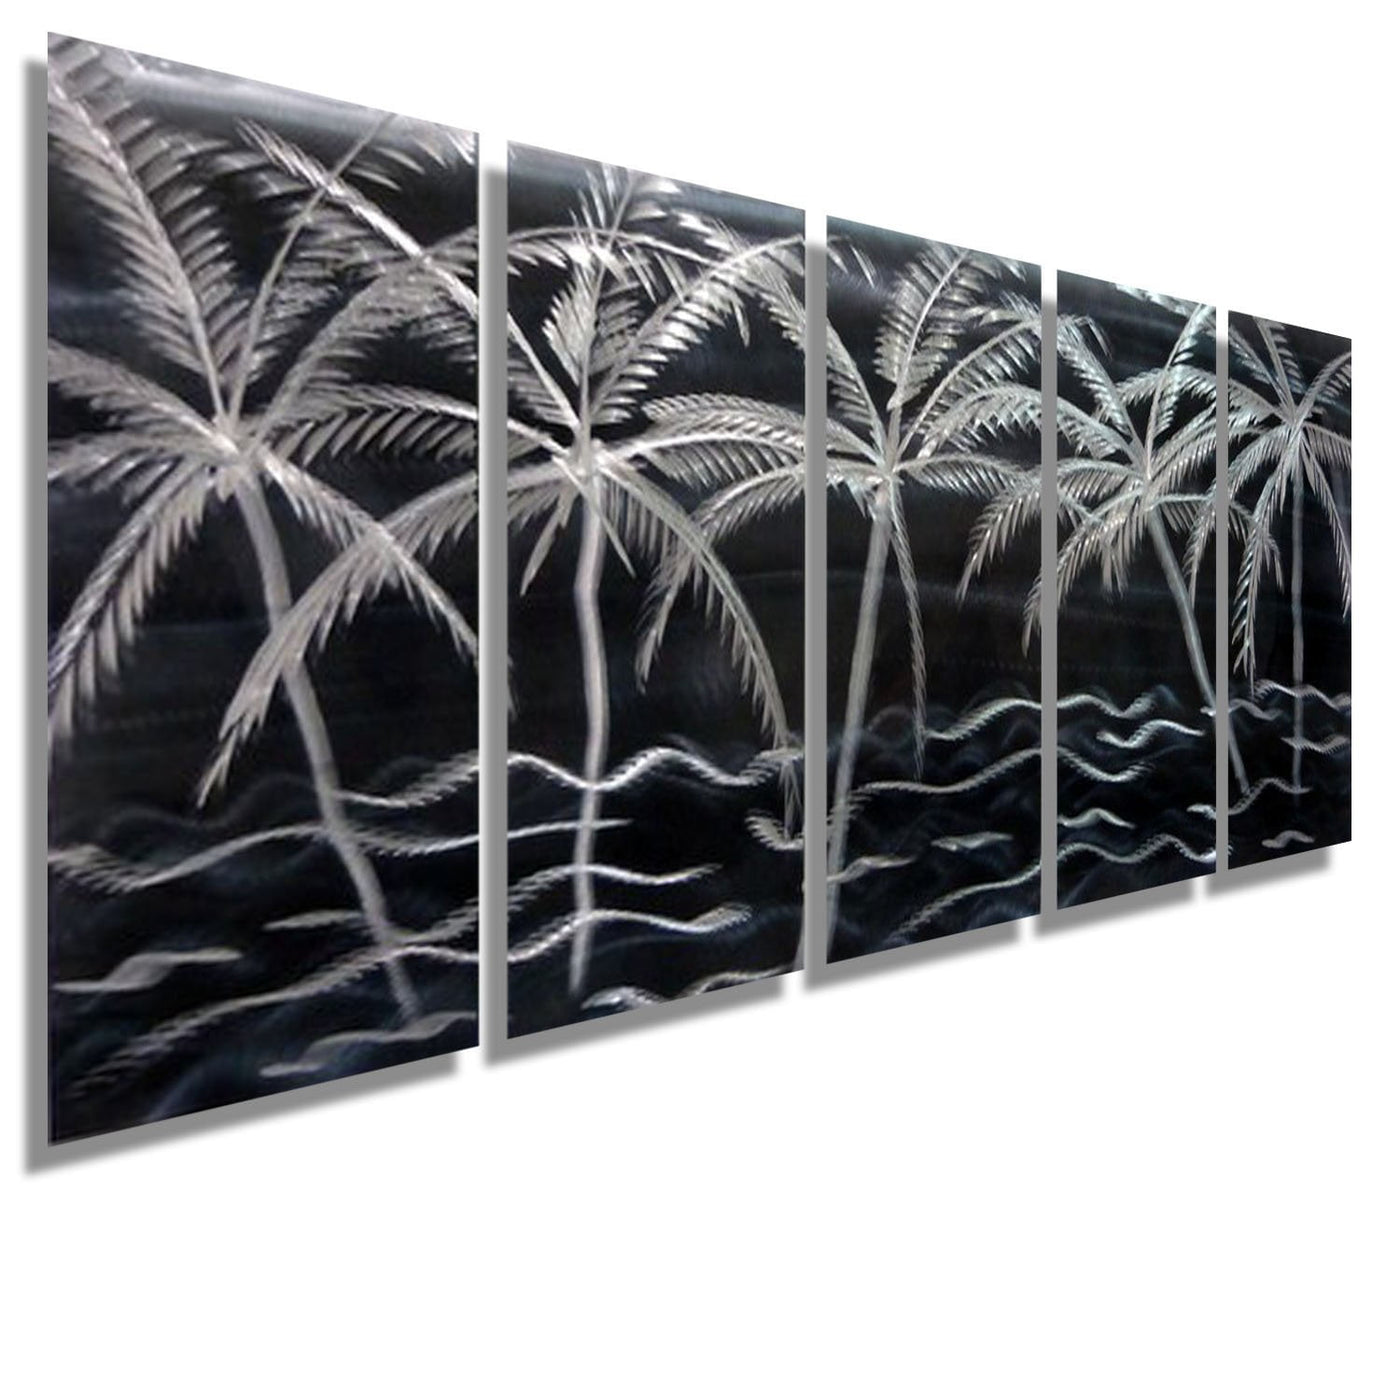 Aqua Silver & Gold Tropical Beach Metal Wall Art Panels By